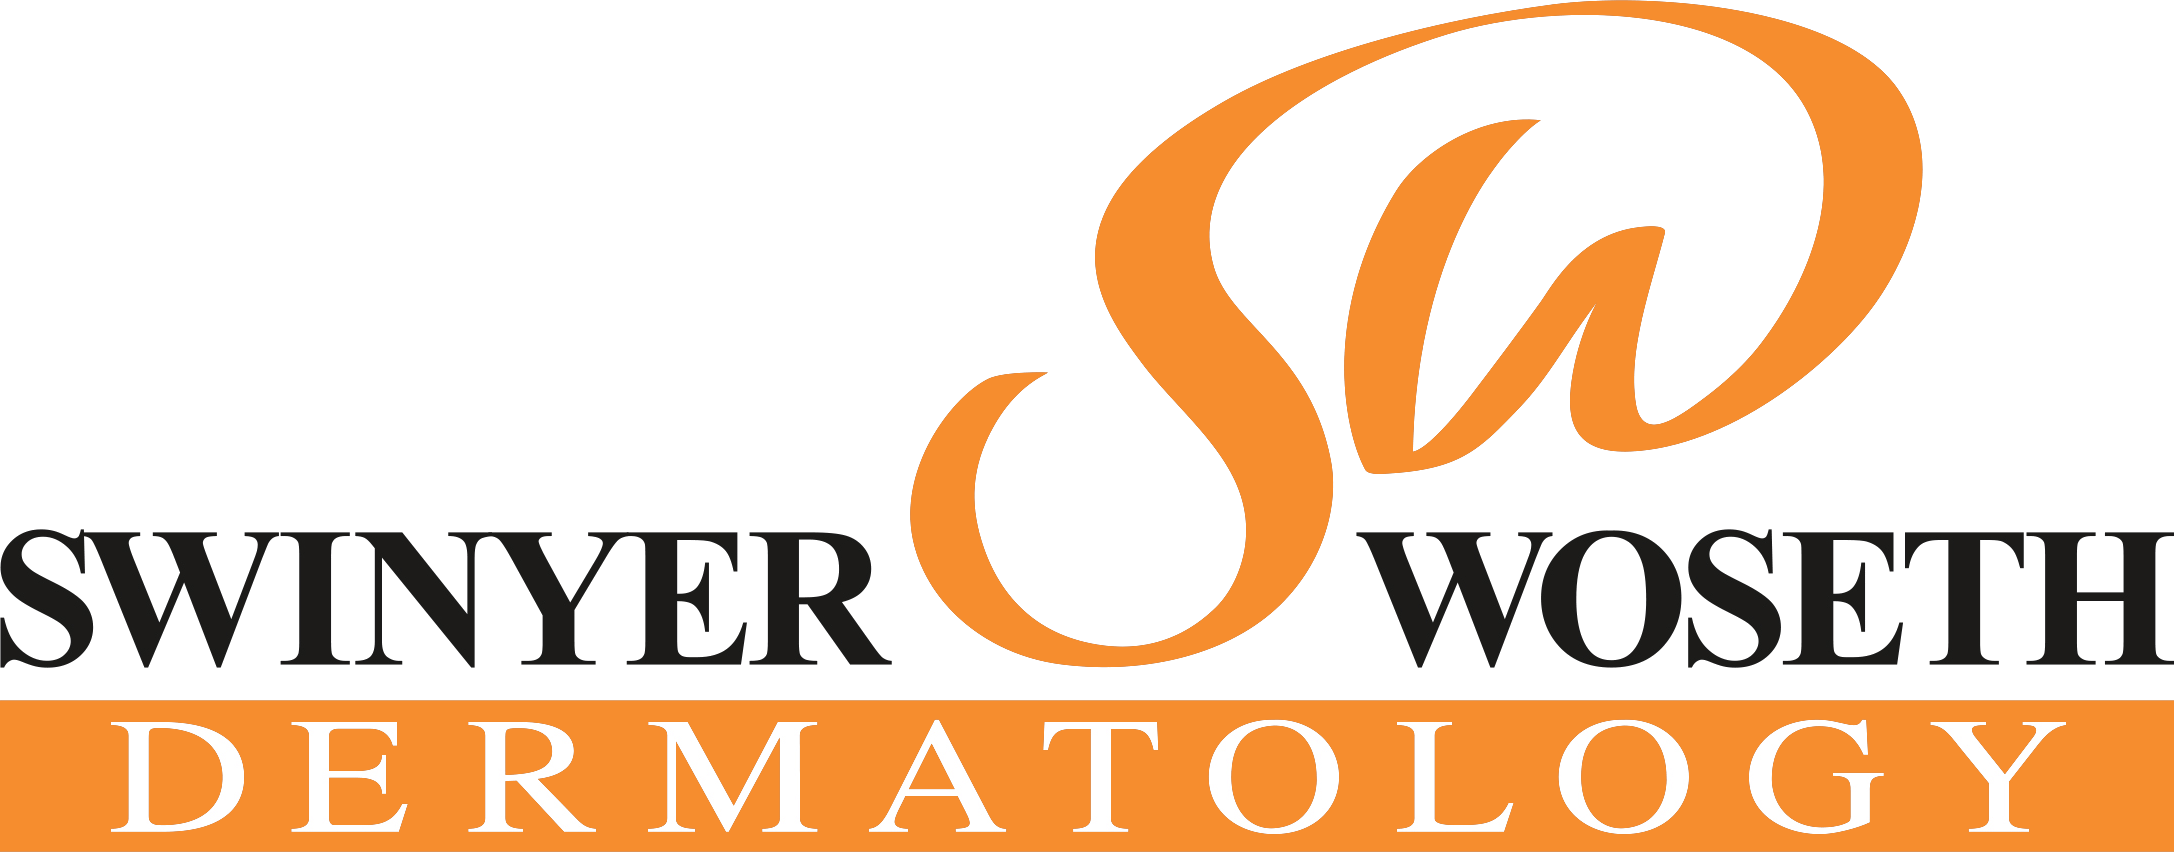 Swinyer Woseth Dermatology